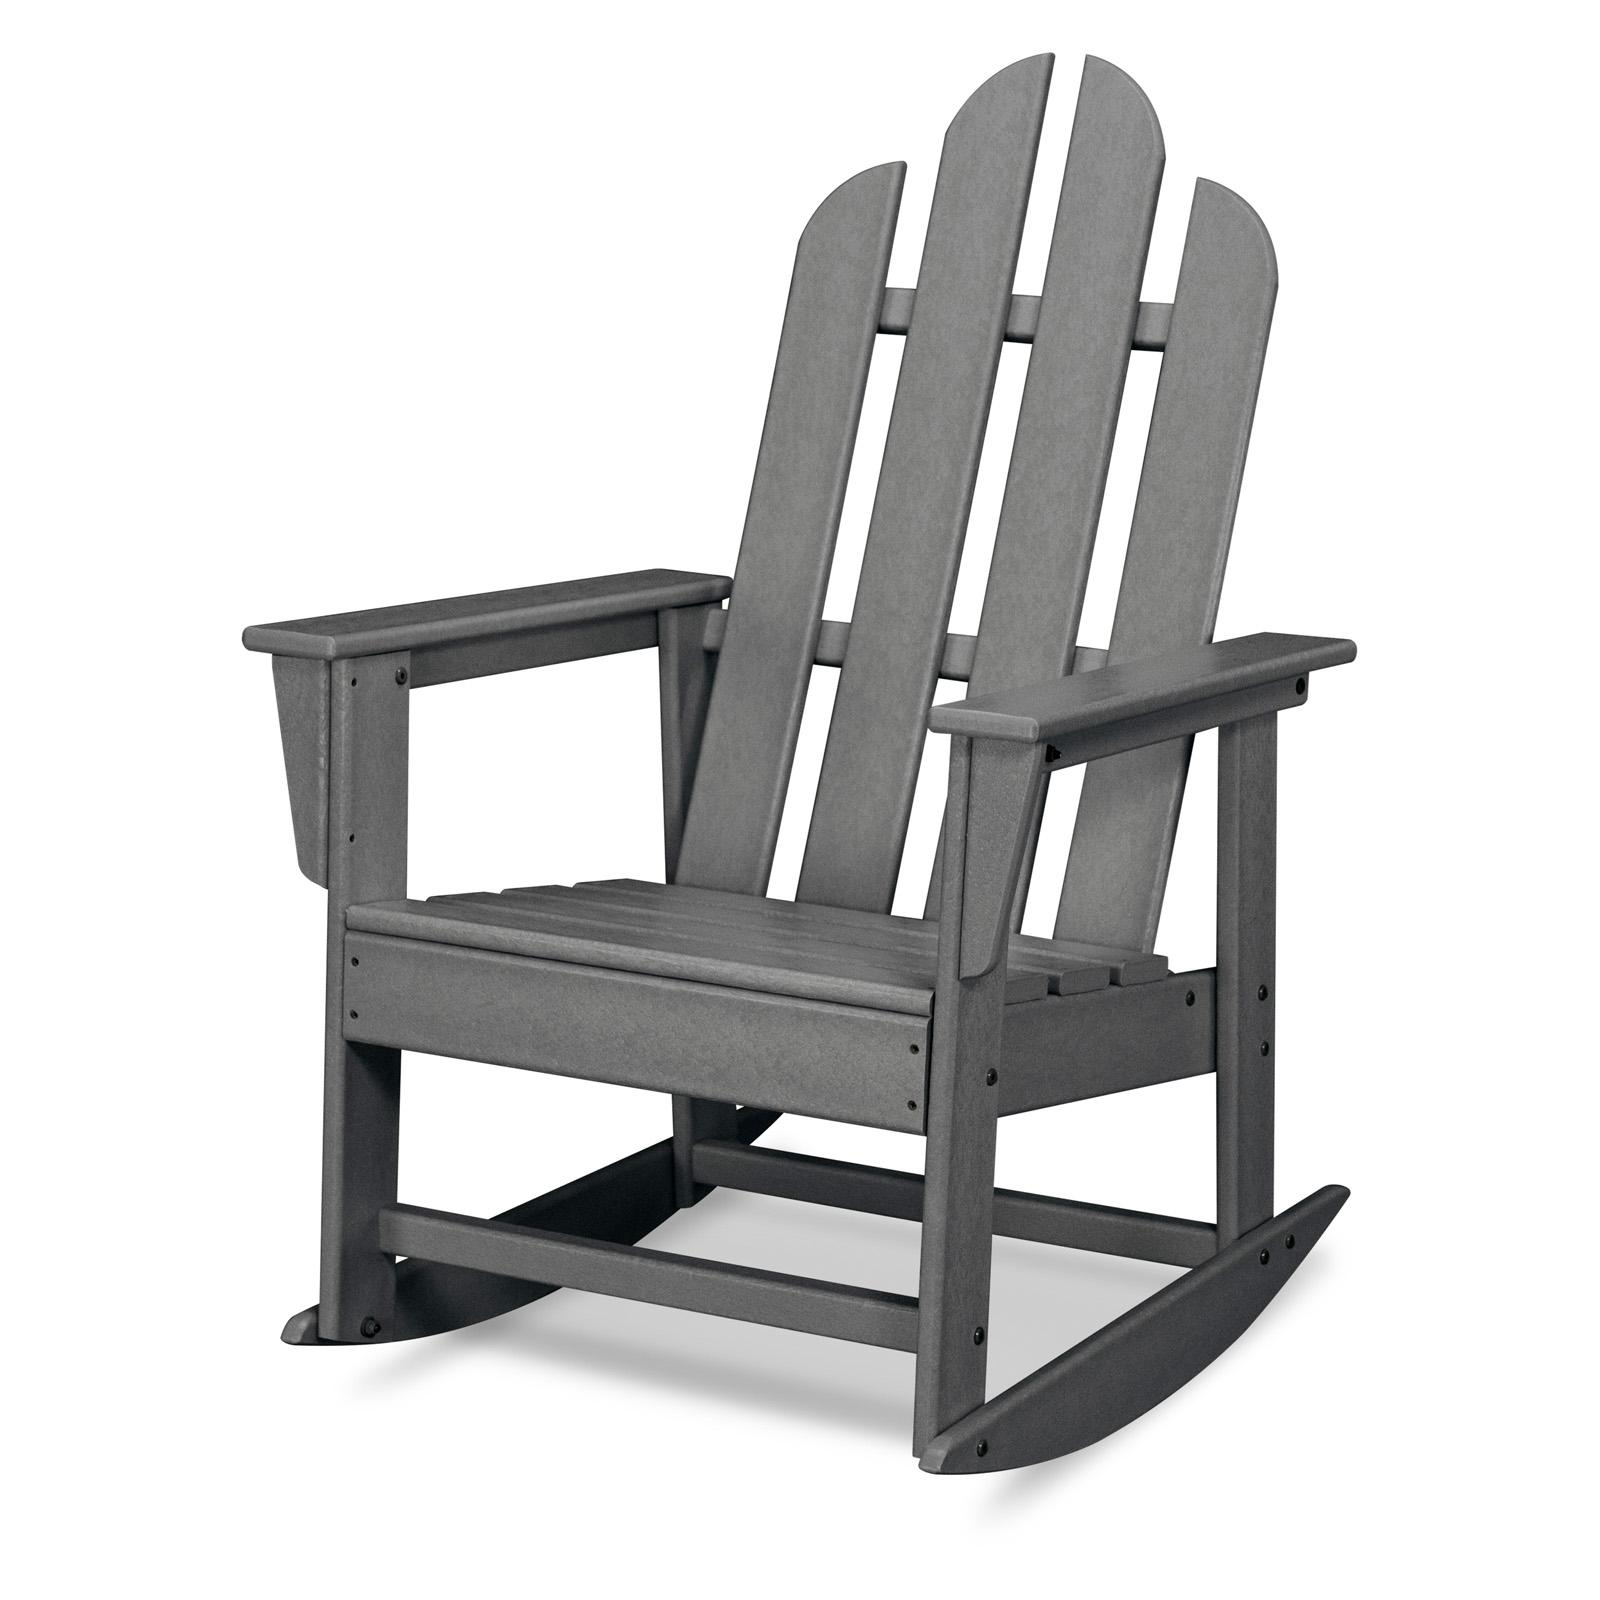 Outdoor POLYWOOD® Long Island Recycled Plastic Adirondack...